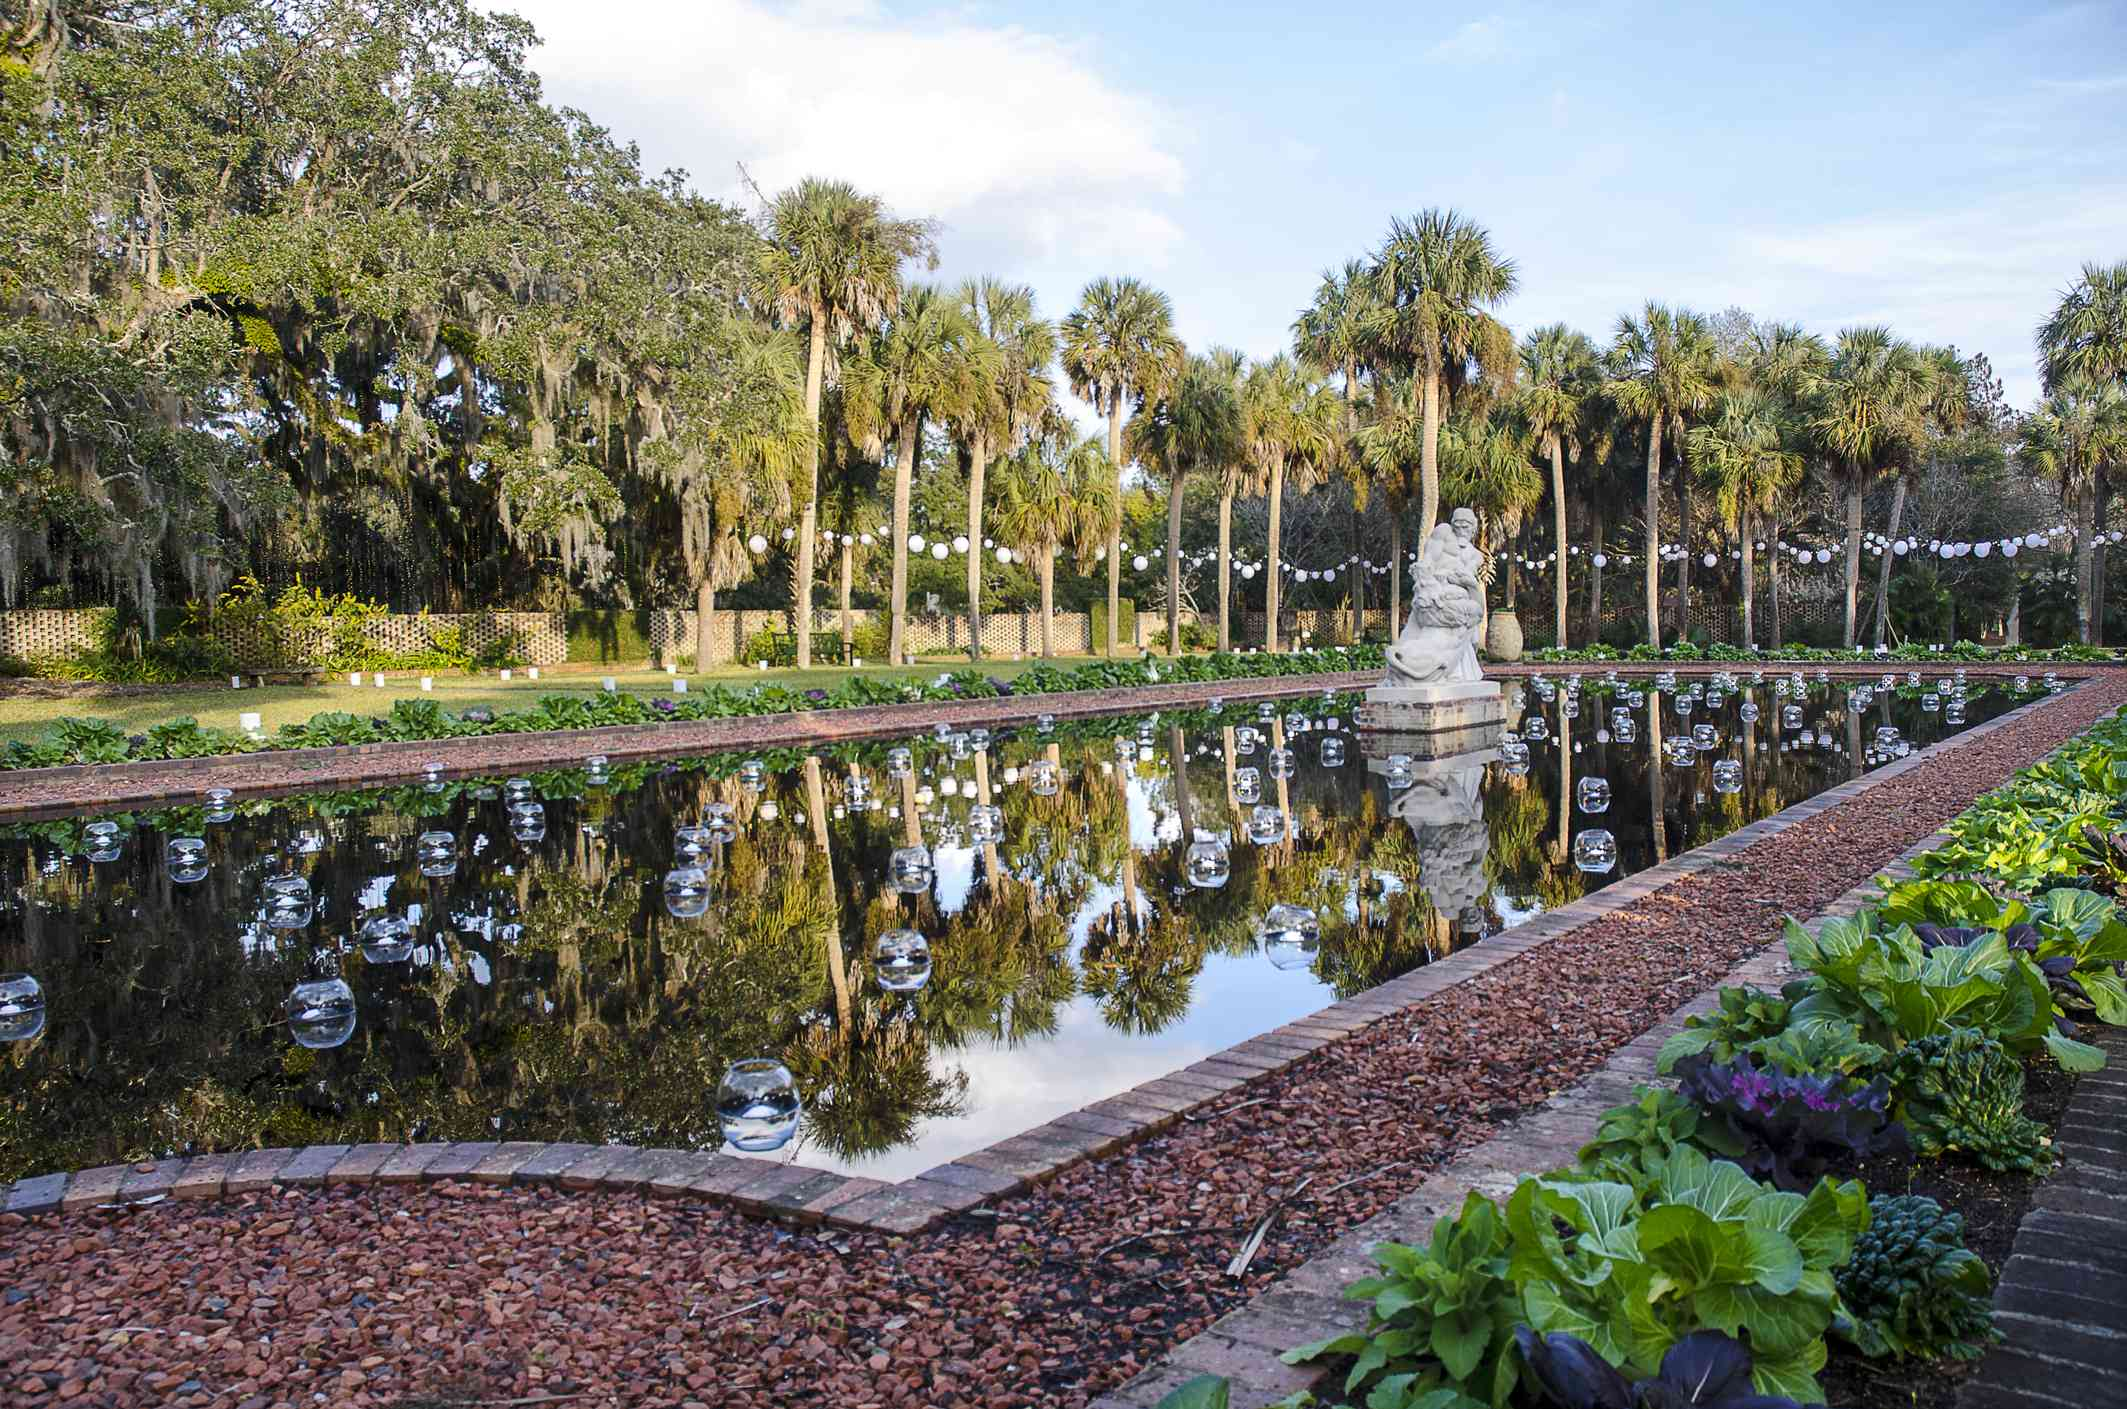 reflecting pool with a statue and glass orbs floating in it